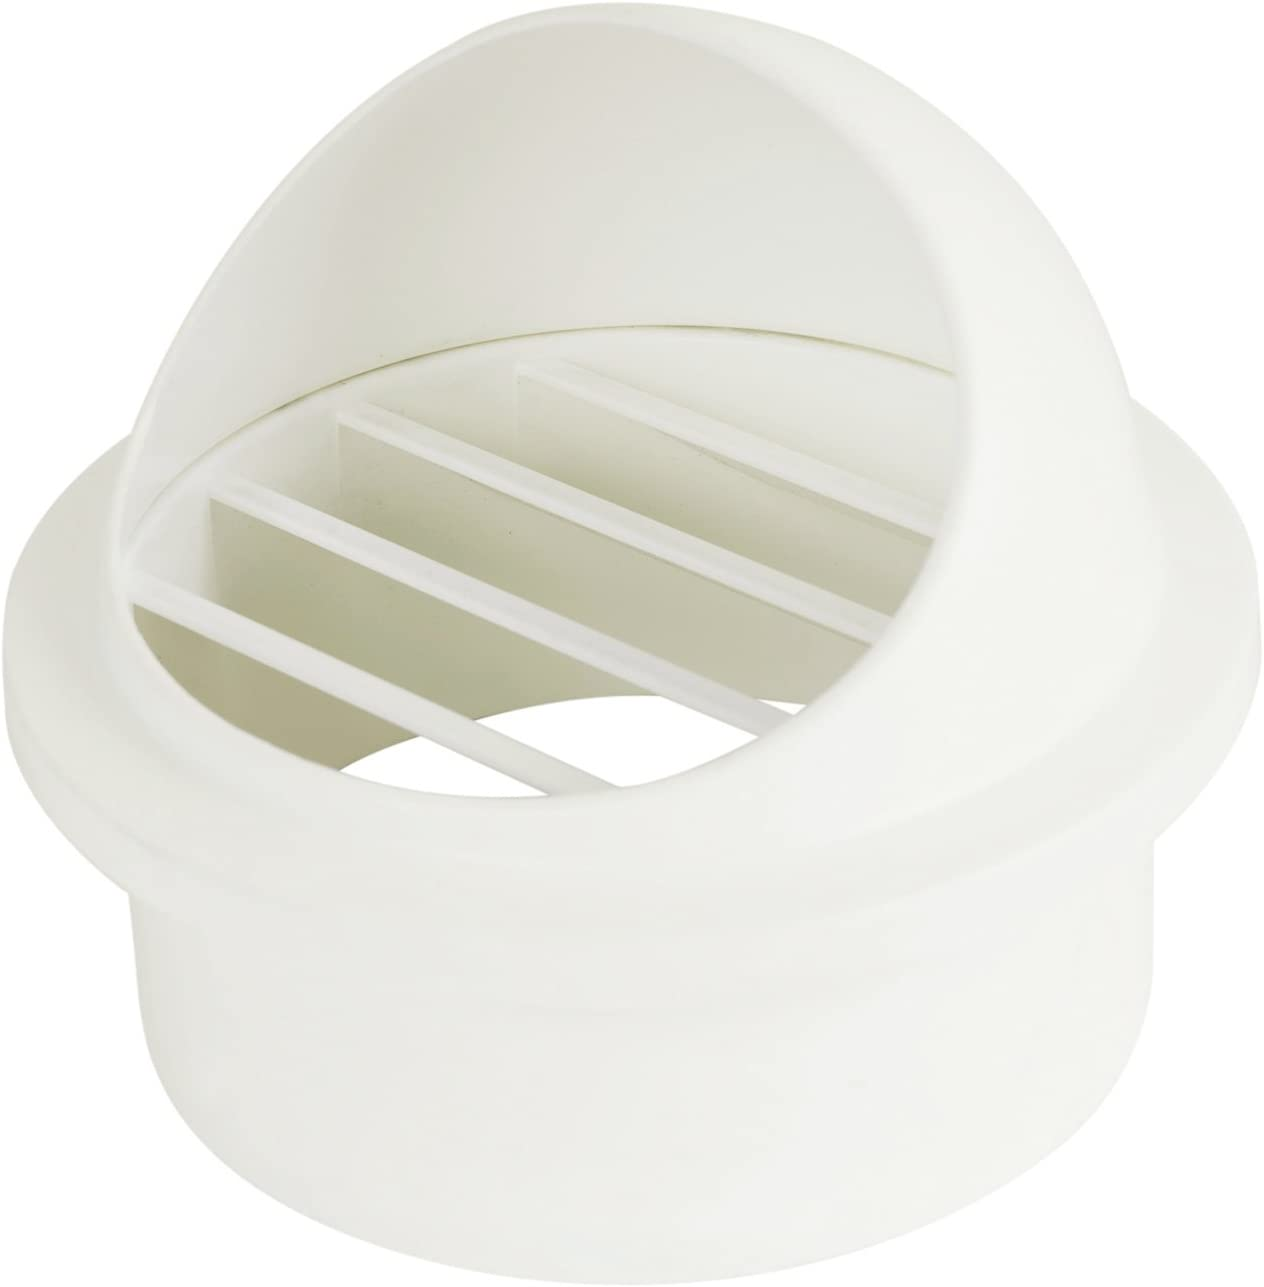 Hon&Guan ABS Air Vent Cover 4 Inch Wall Mount Grille Exhaust Outlet White(Round)